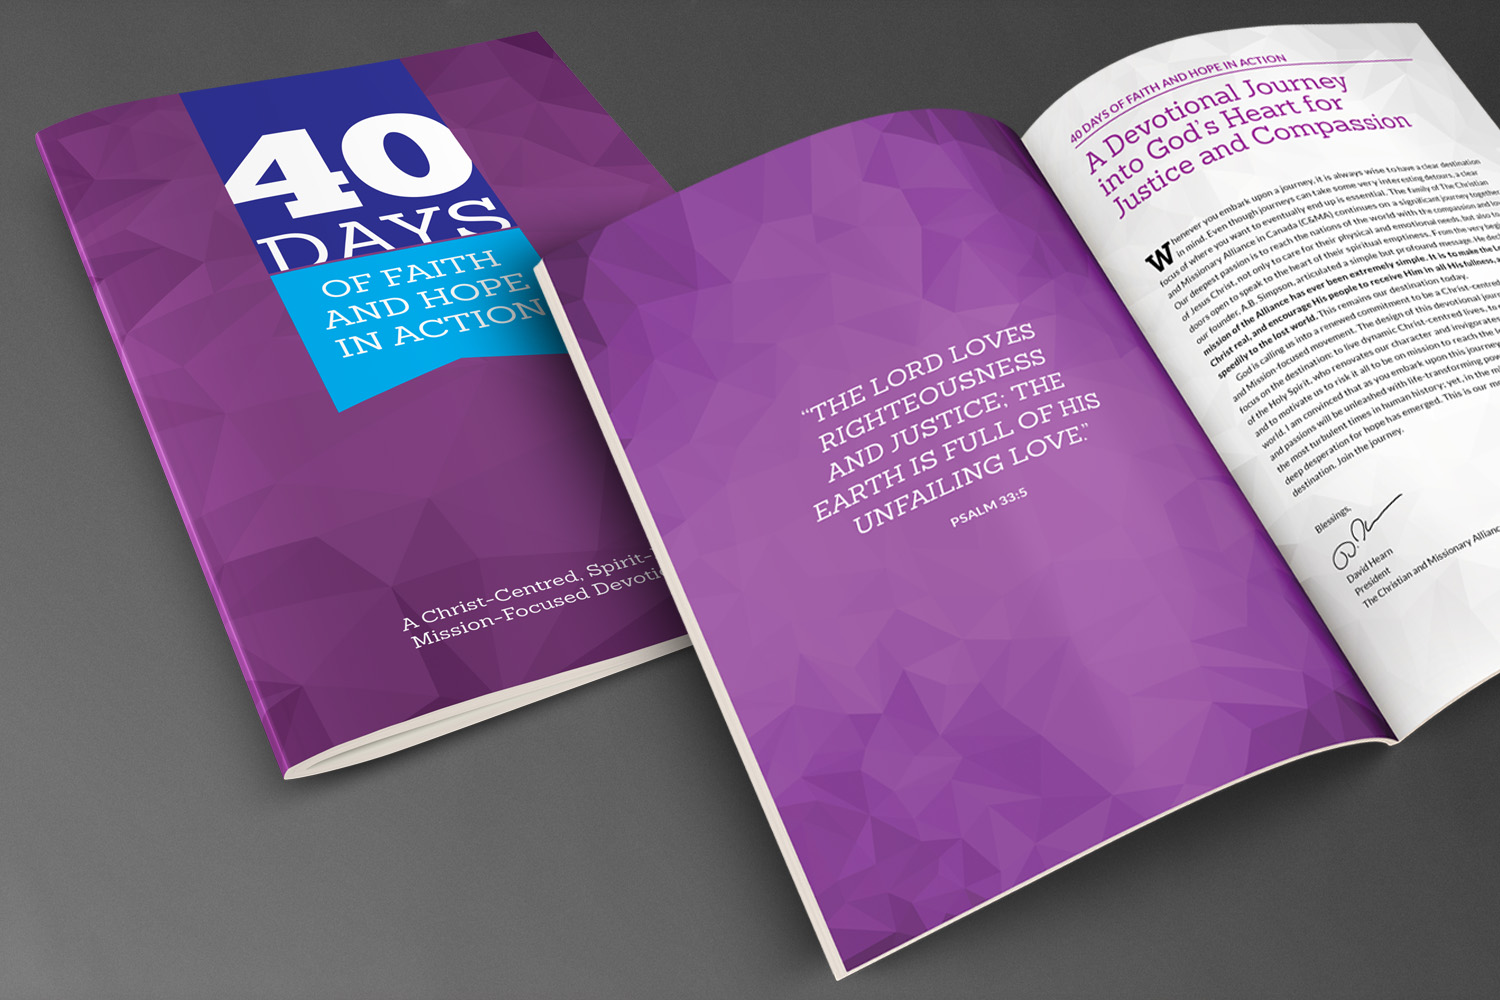 40-Days-Booklet-Design.jpg